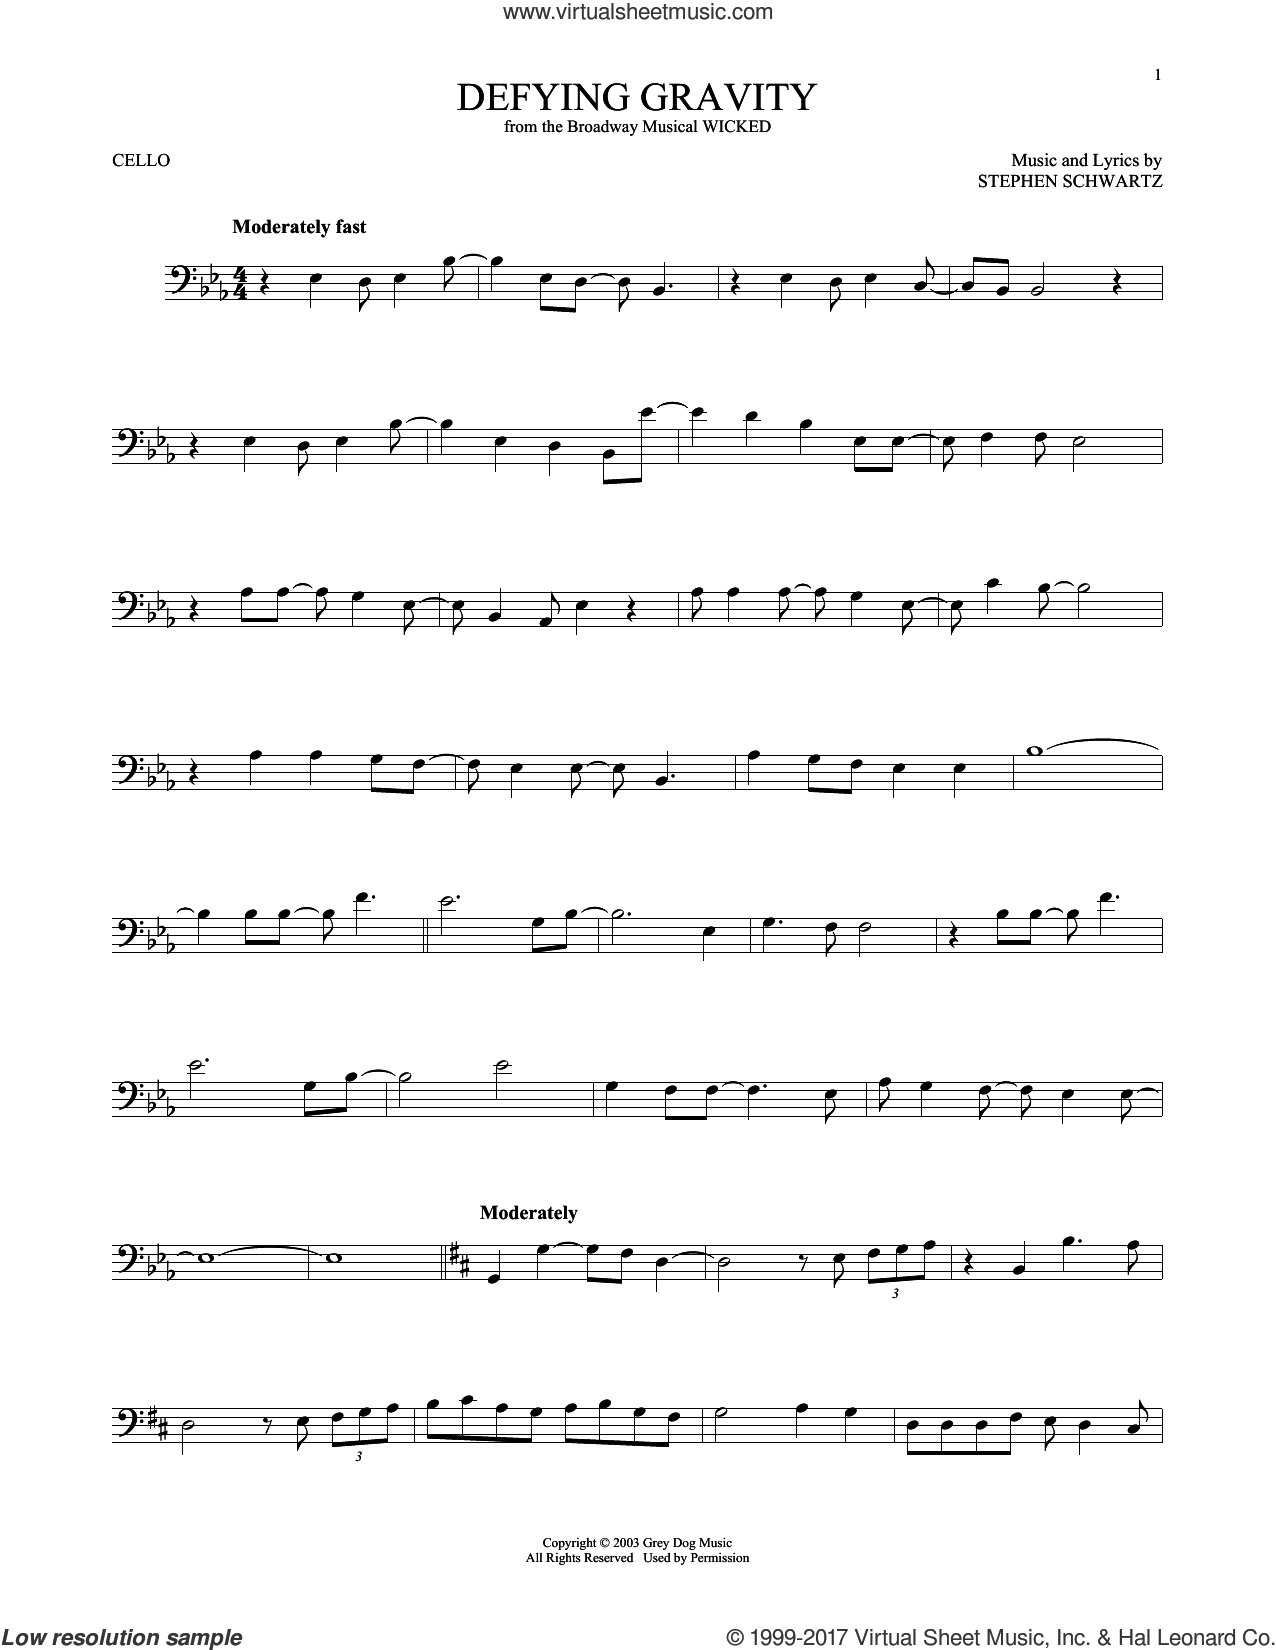 Defying Gravity sheet music for cello solo by Stephen Schwartz, intermediate. Score Image Preview.